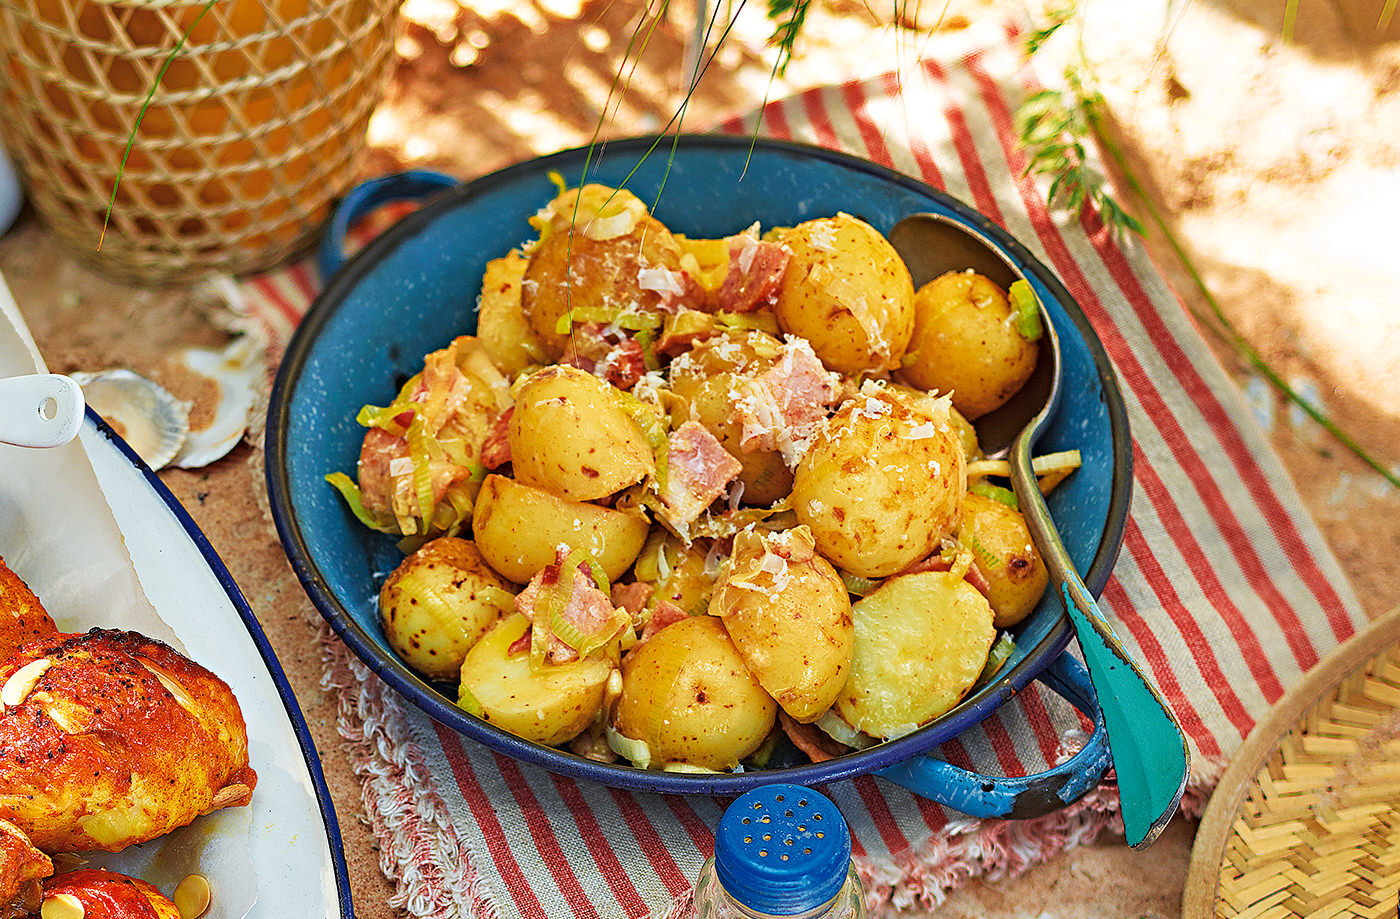 Caesar-style potato salad recipe